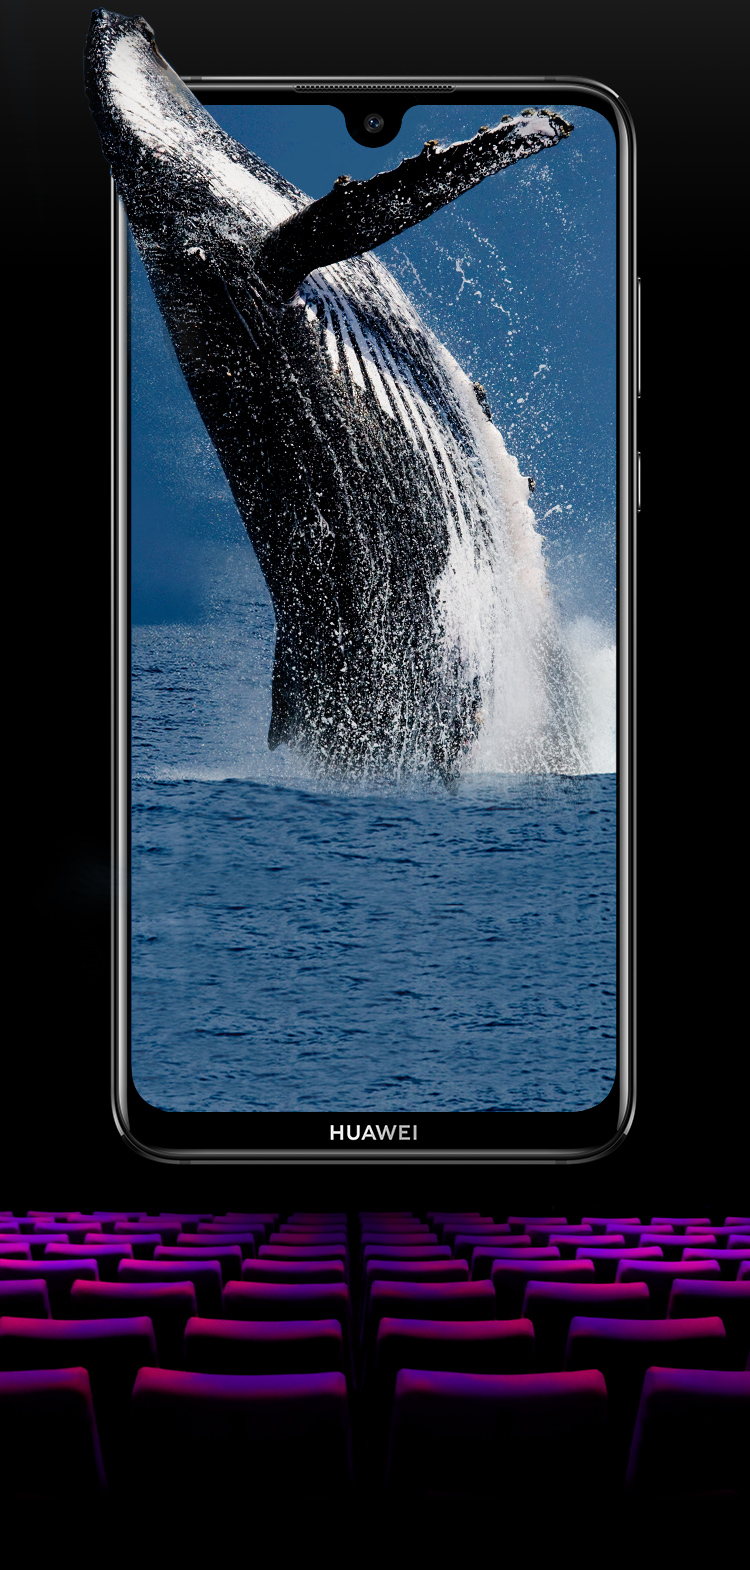 Huawei Y MAX Fullview Display